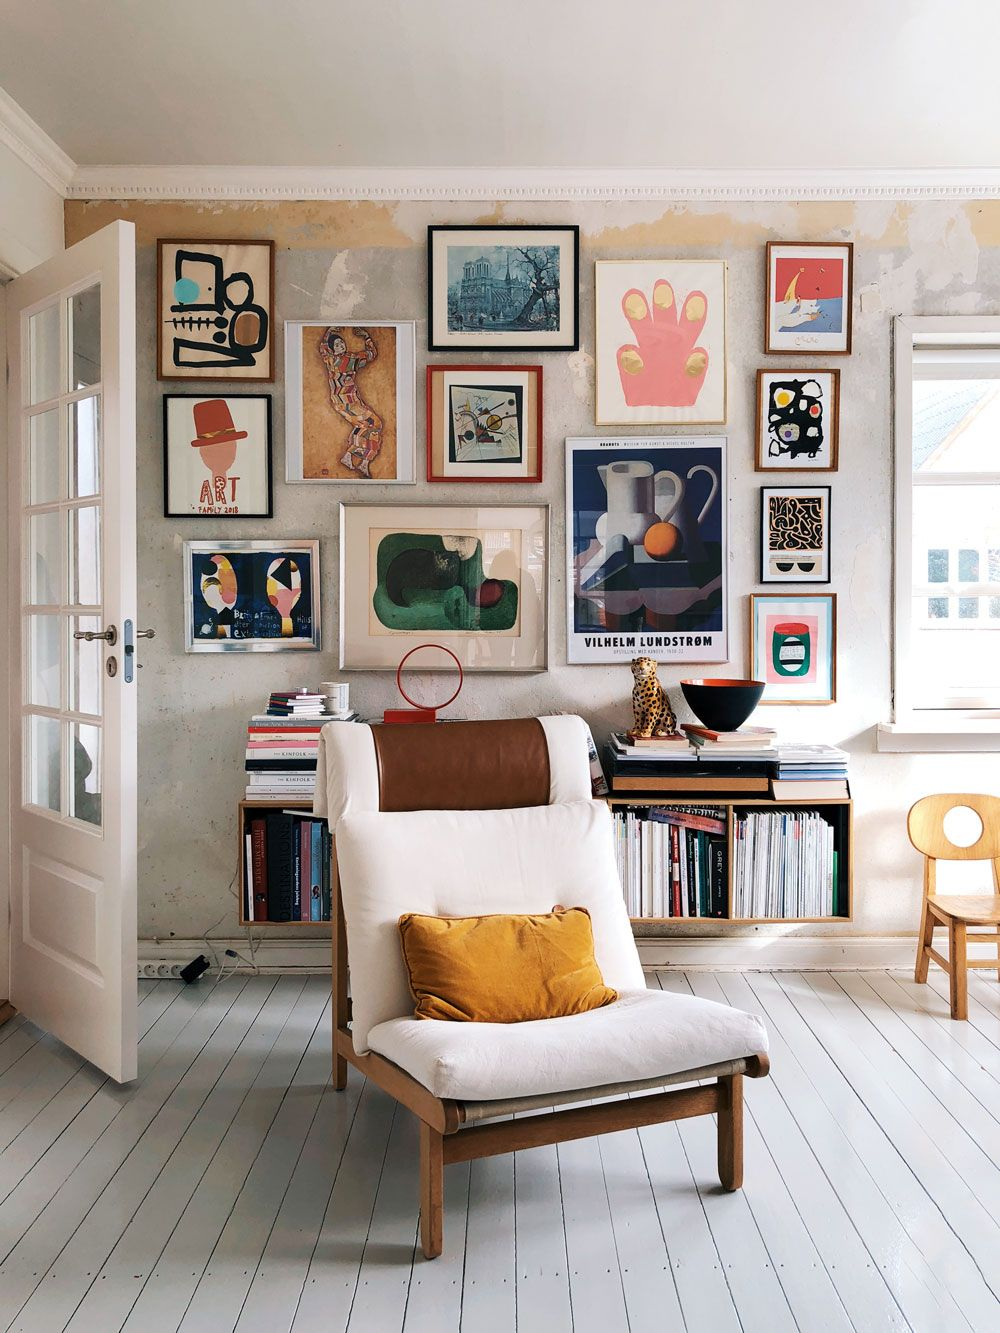 impressive home art gallery. / sfgirlbybay | home | Pinterest ...